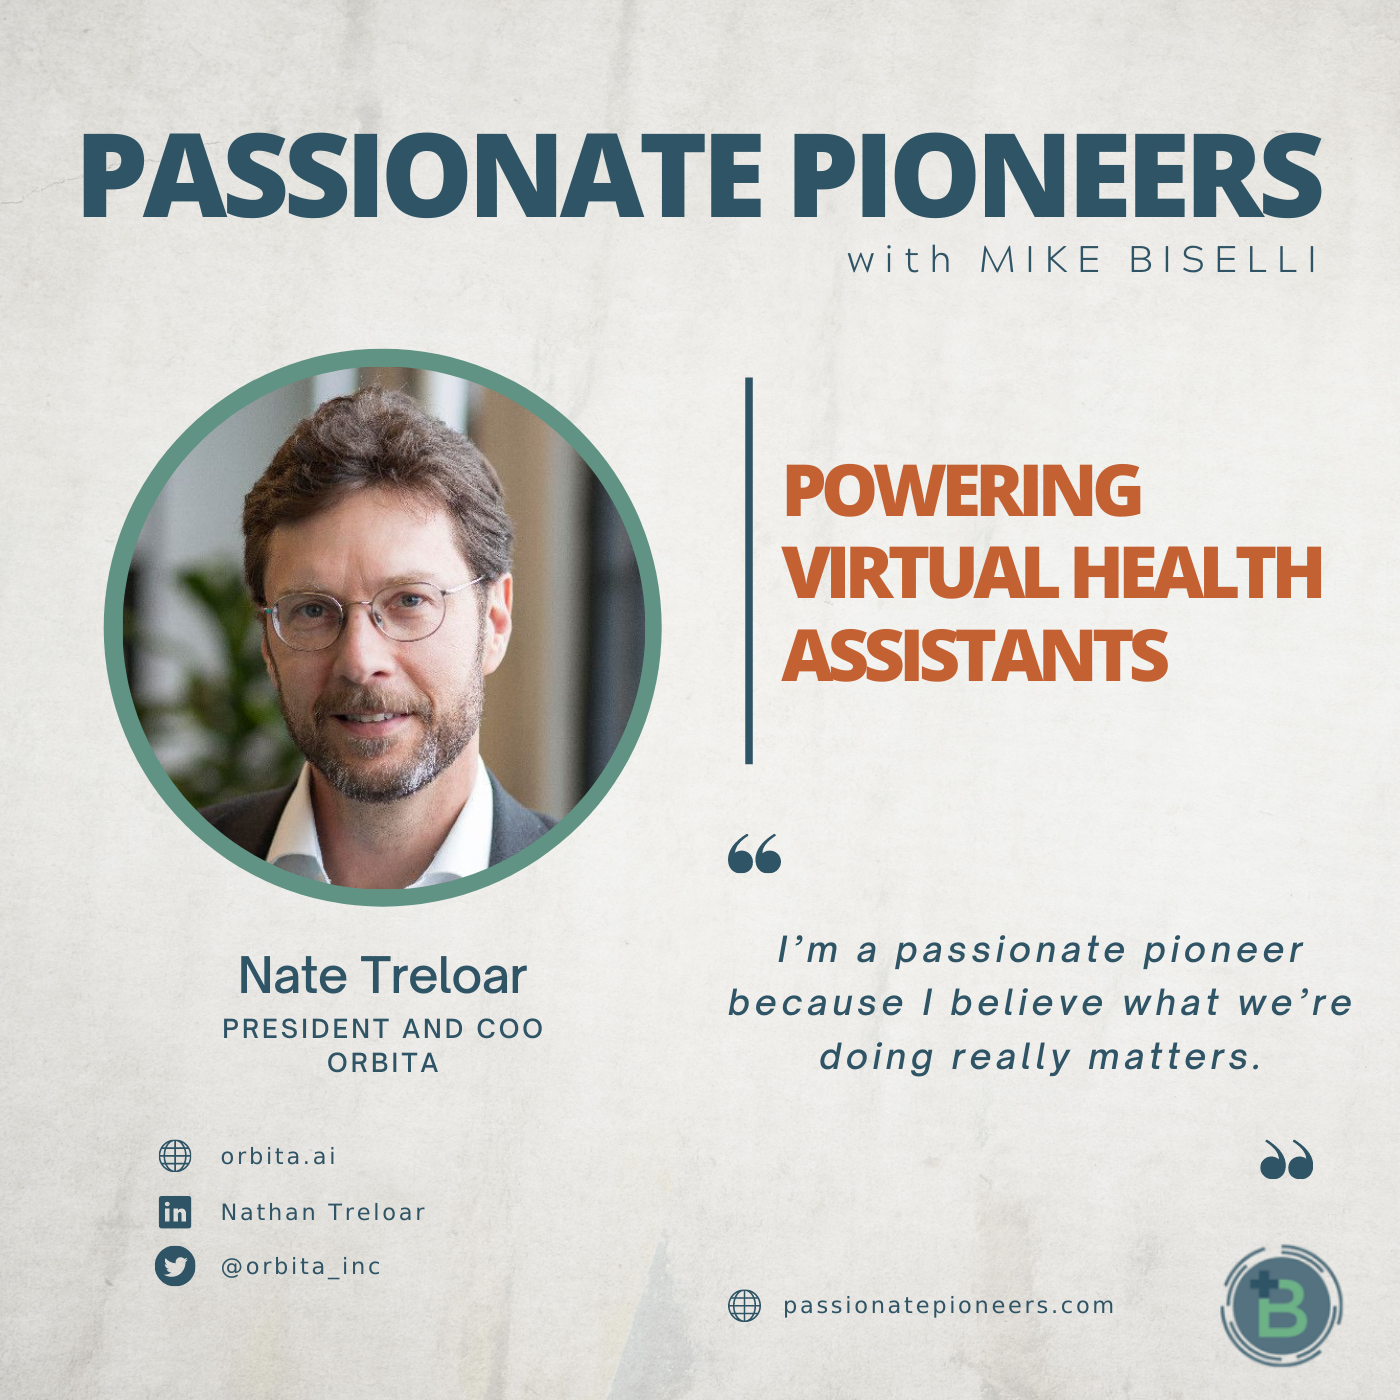 Artwork for podcast Passionate Pioneers with Mike Biselli